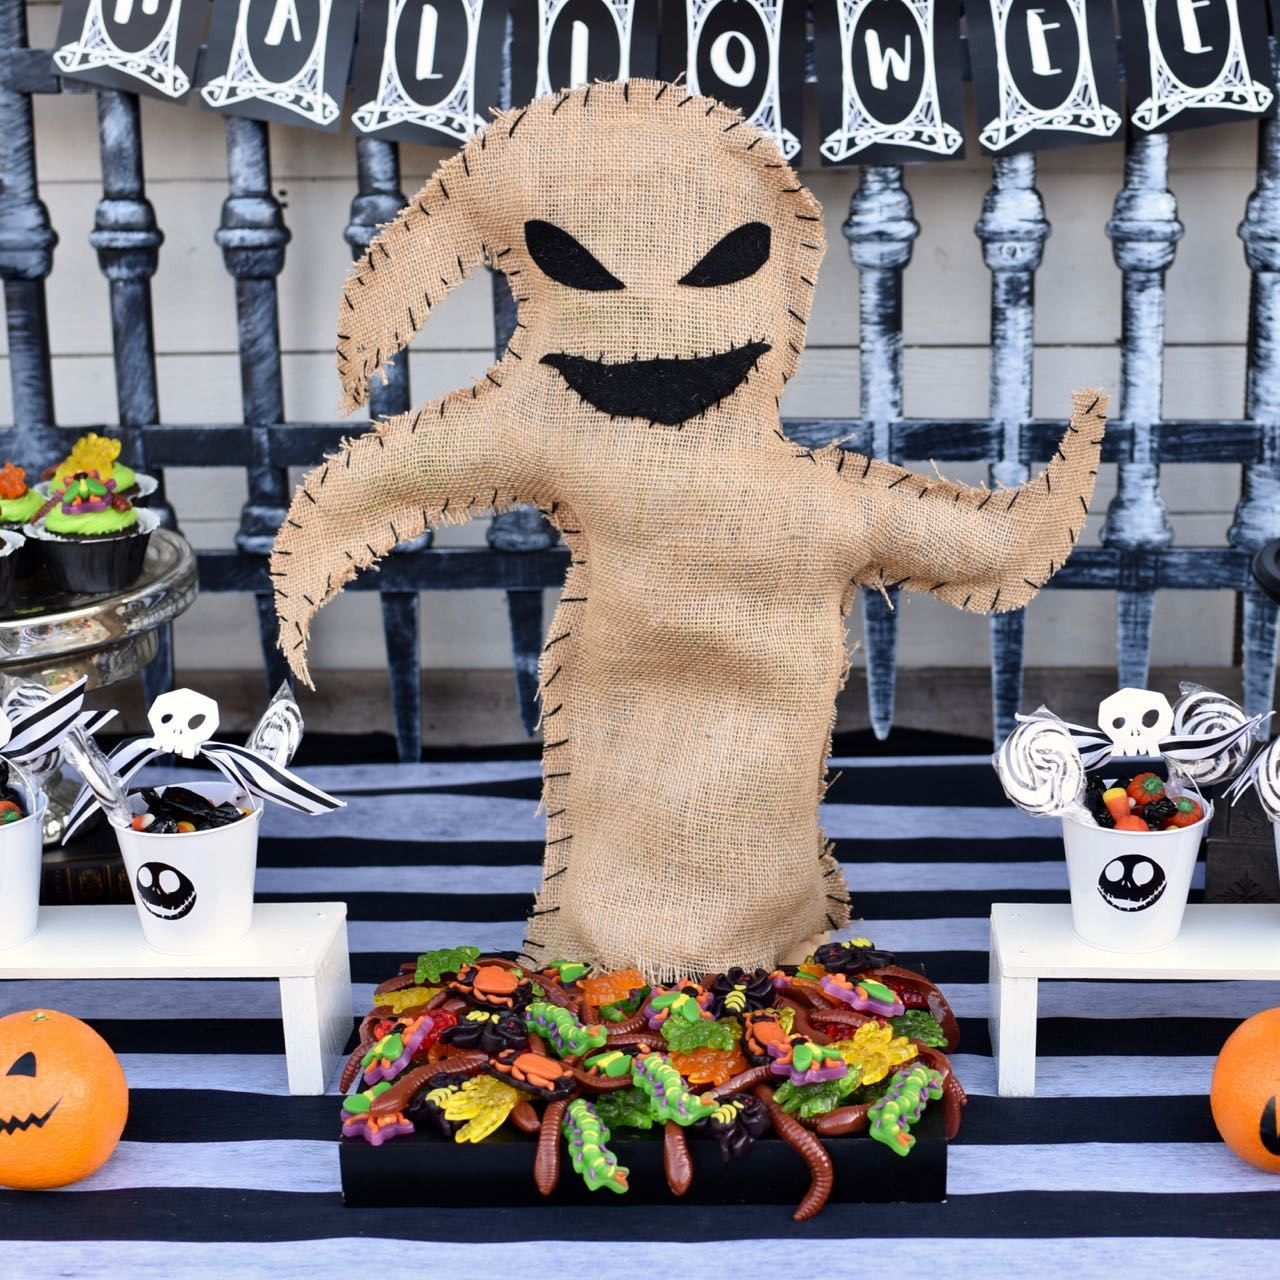 Best ideas about Nightmare Before Christmas Birthday Decorations . Save or Pin Nightmare Before Christmas Party Favors Make Life Lovely Now.